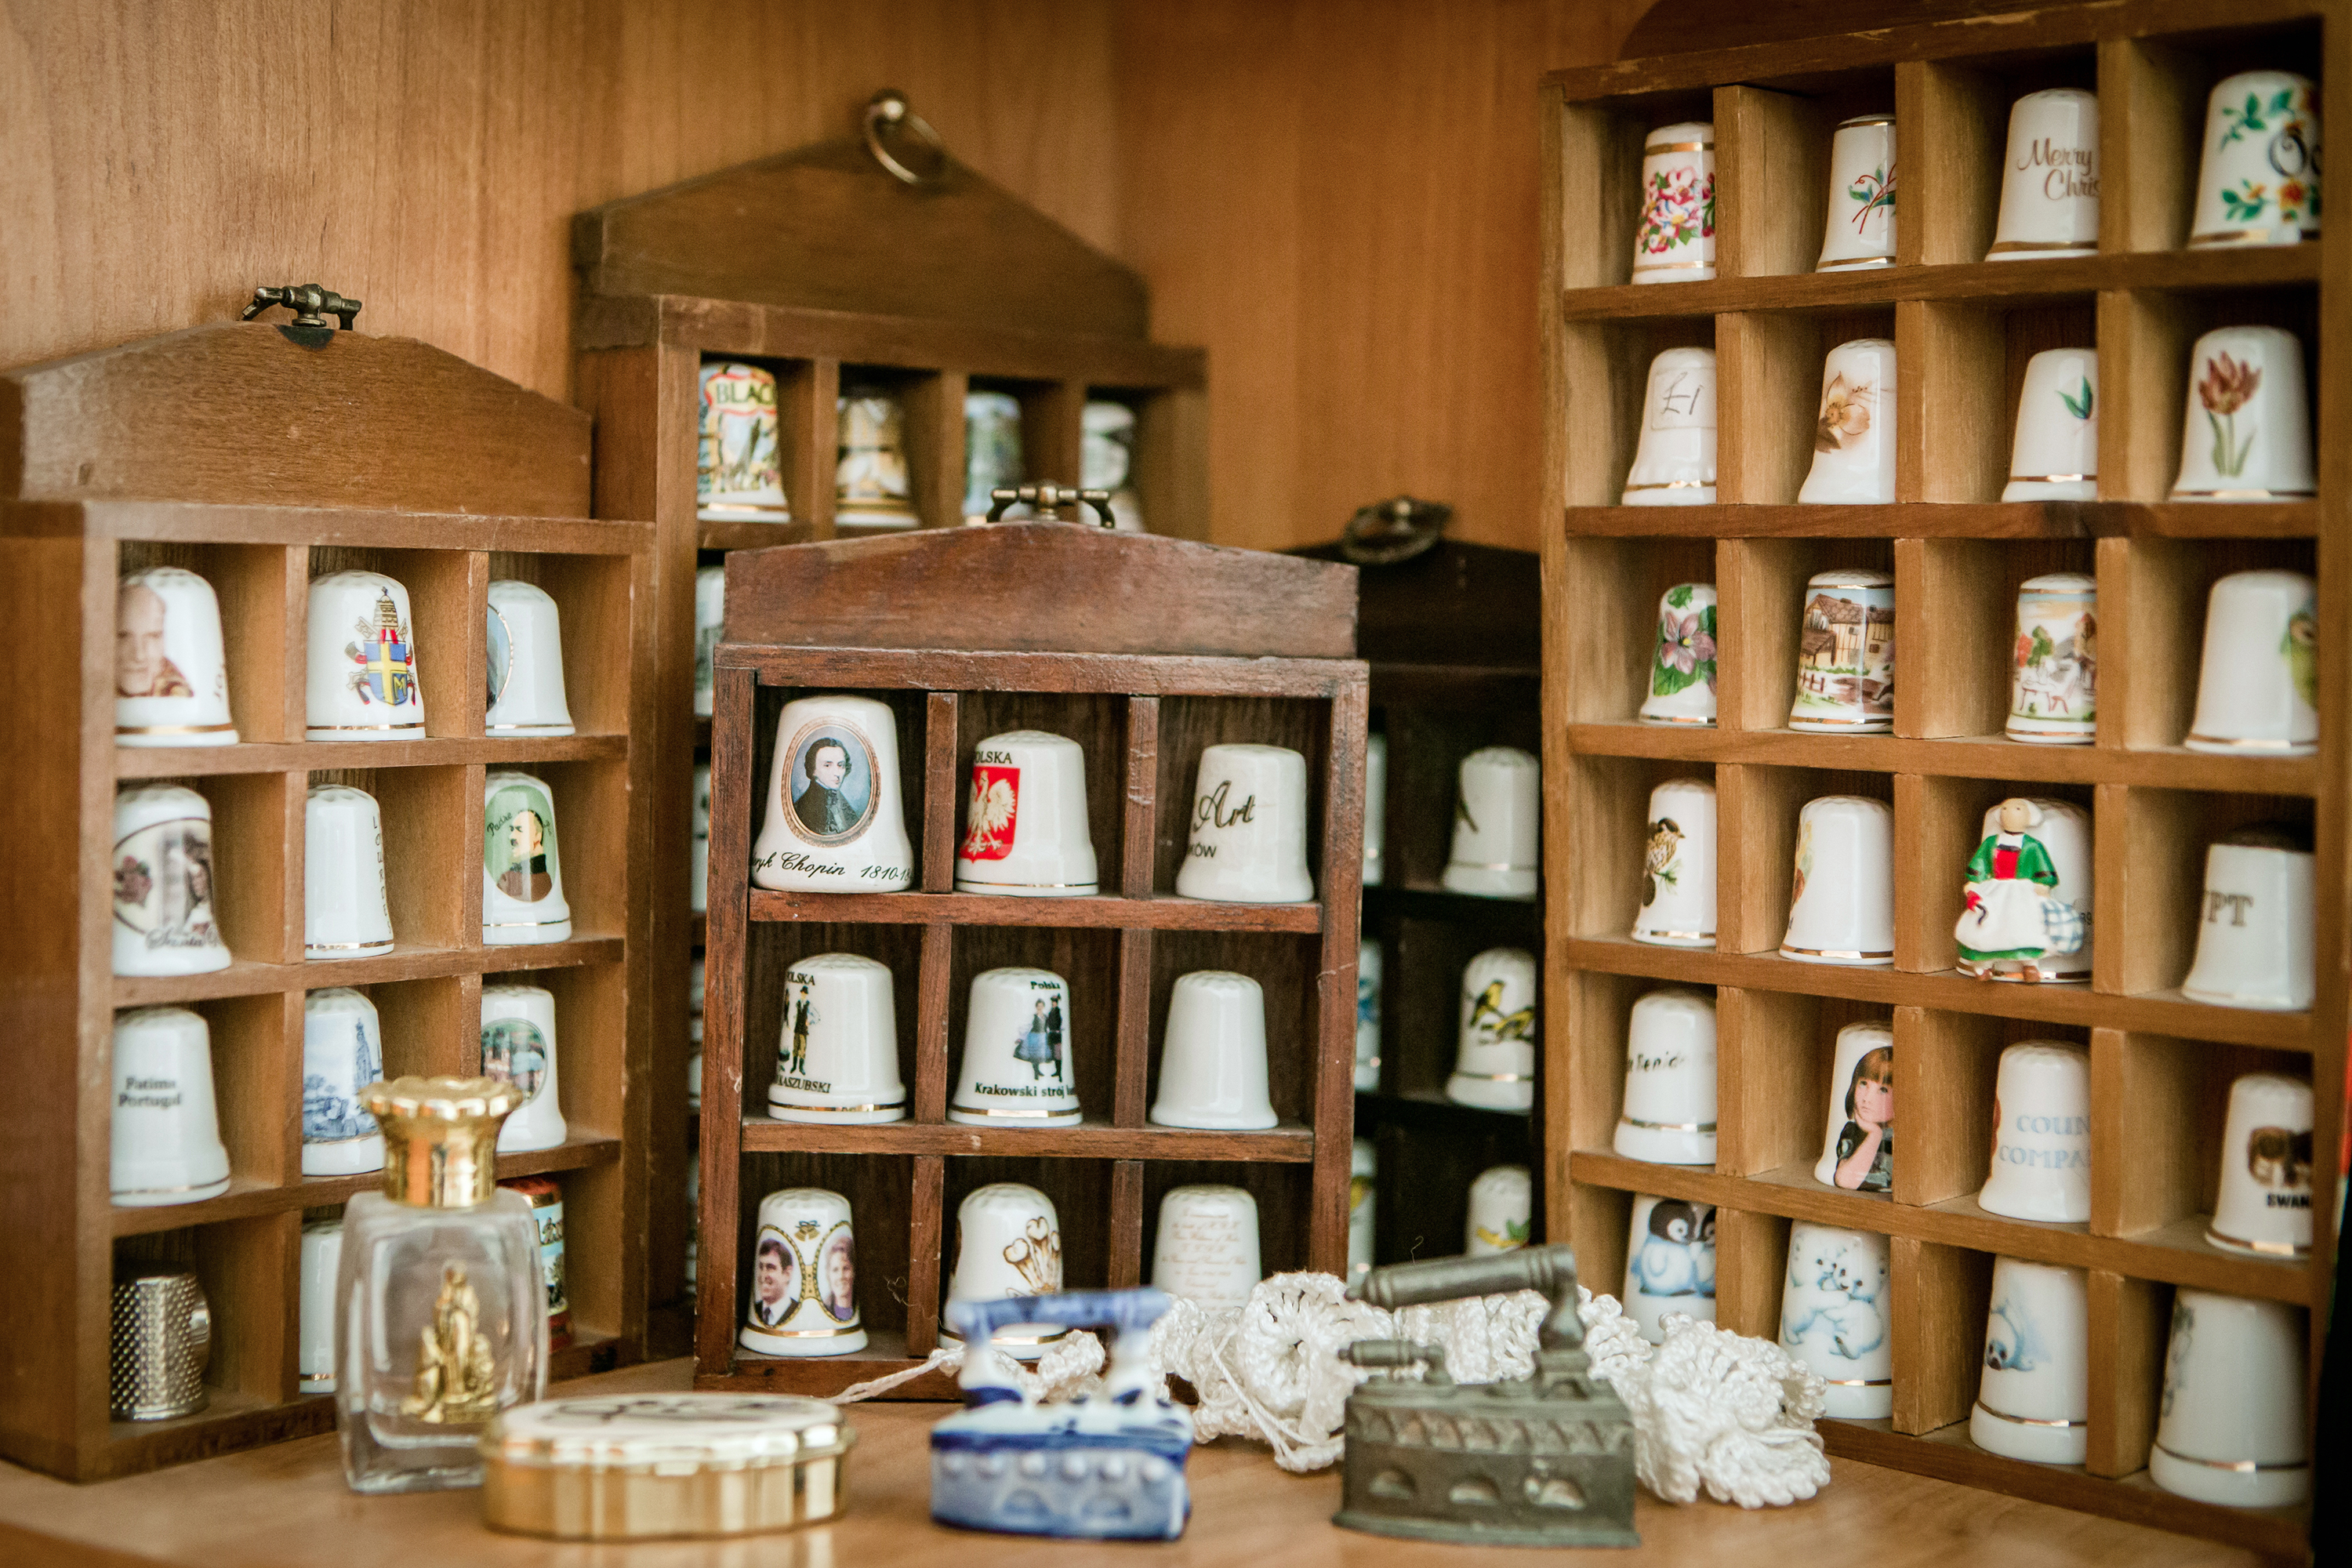 Collection of thimbles.